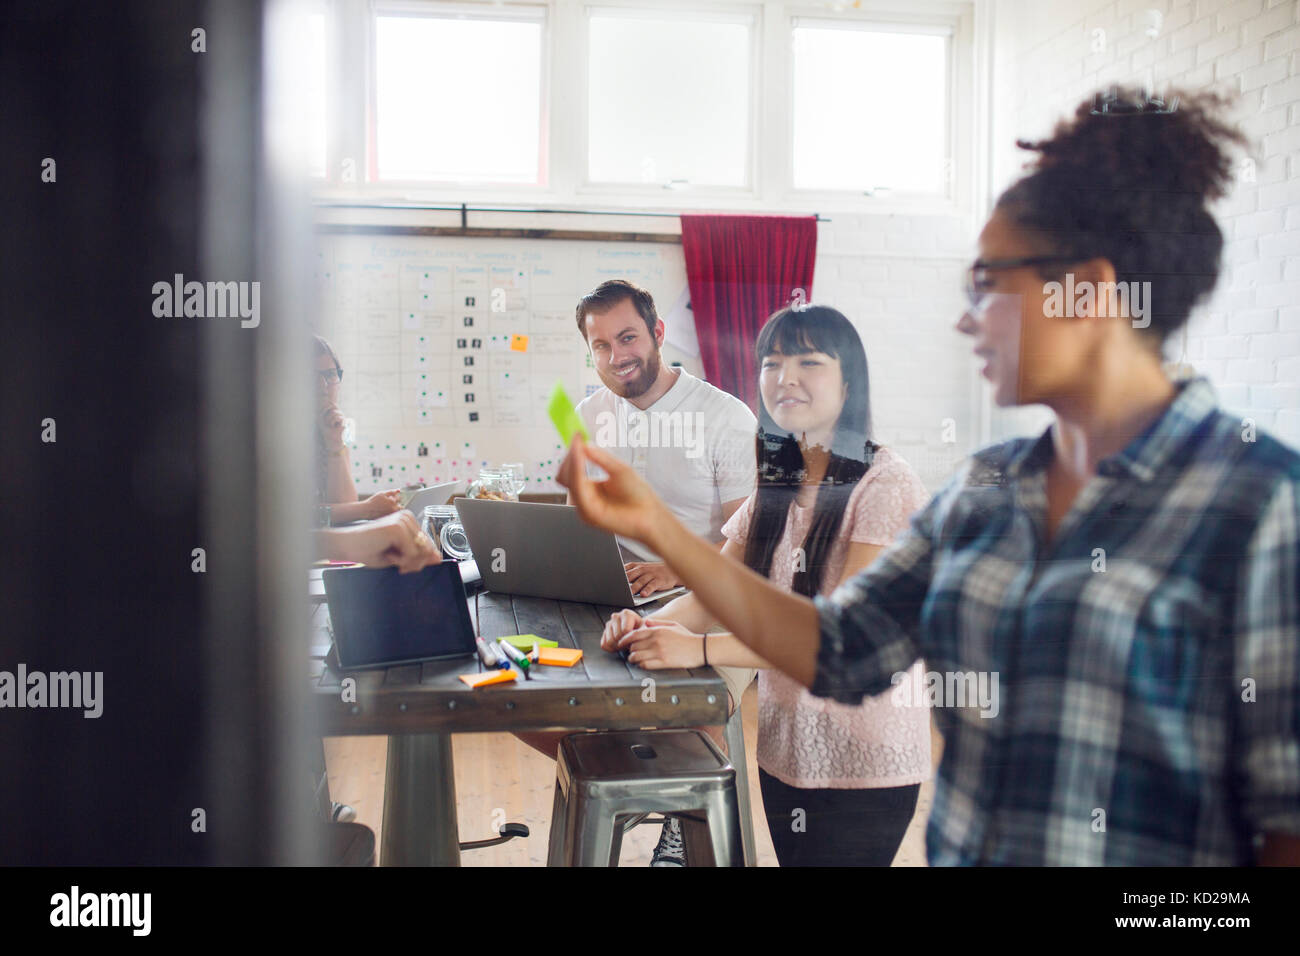 Smiling coworkers in office, woman gesturing - Stock Image